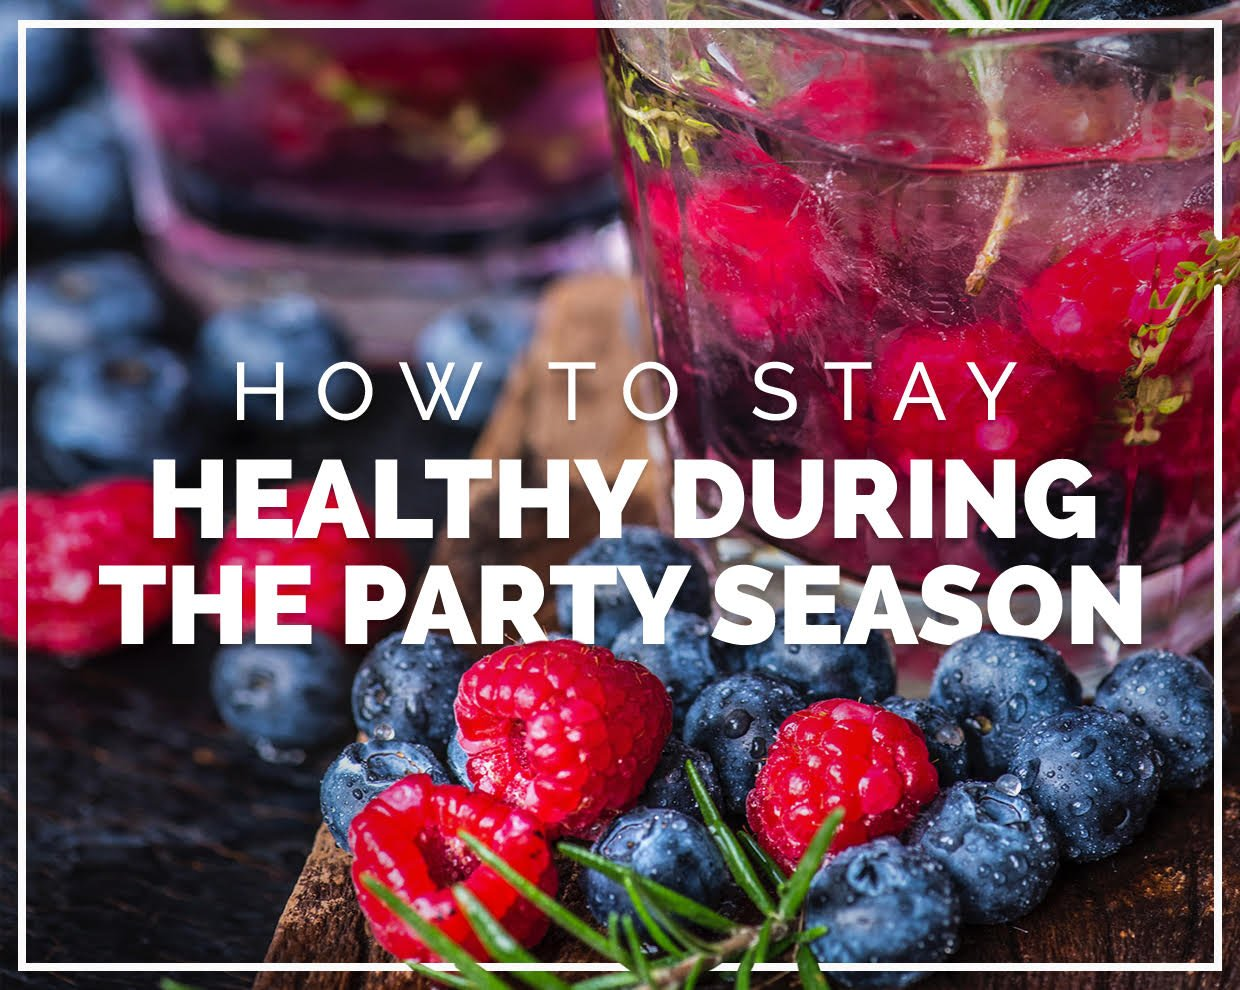 How to stay healthy during the party season